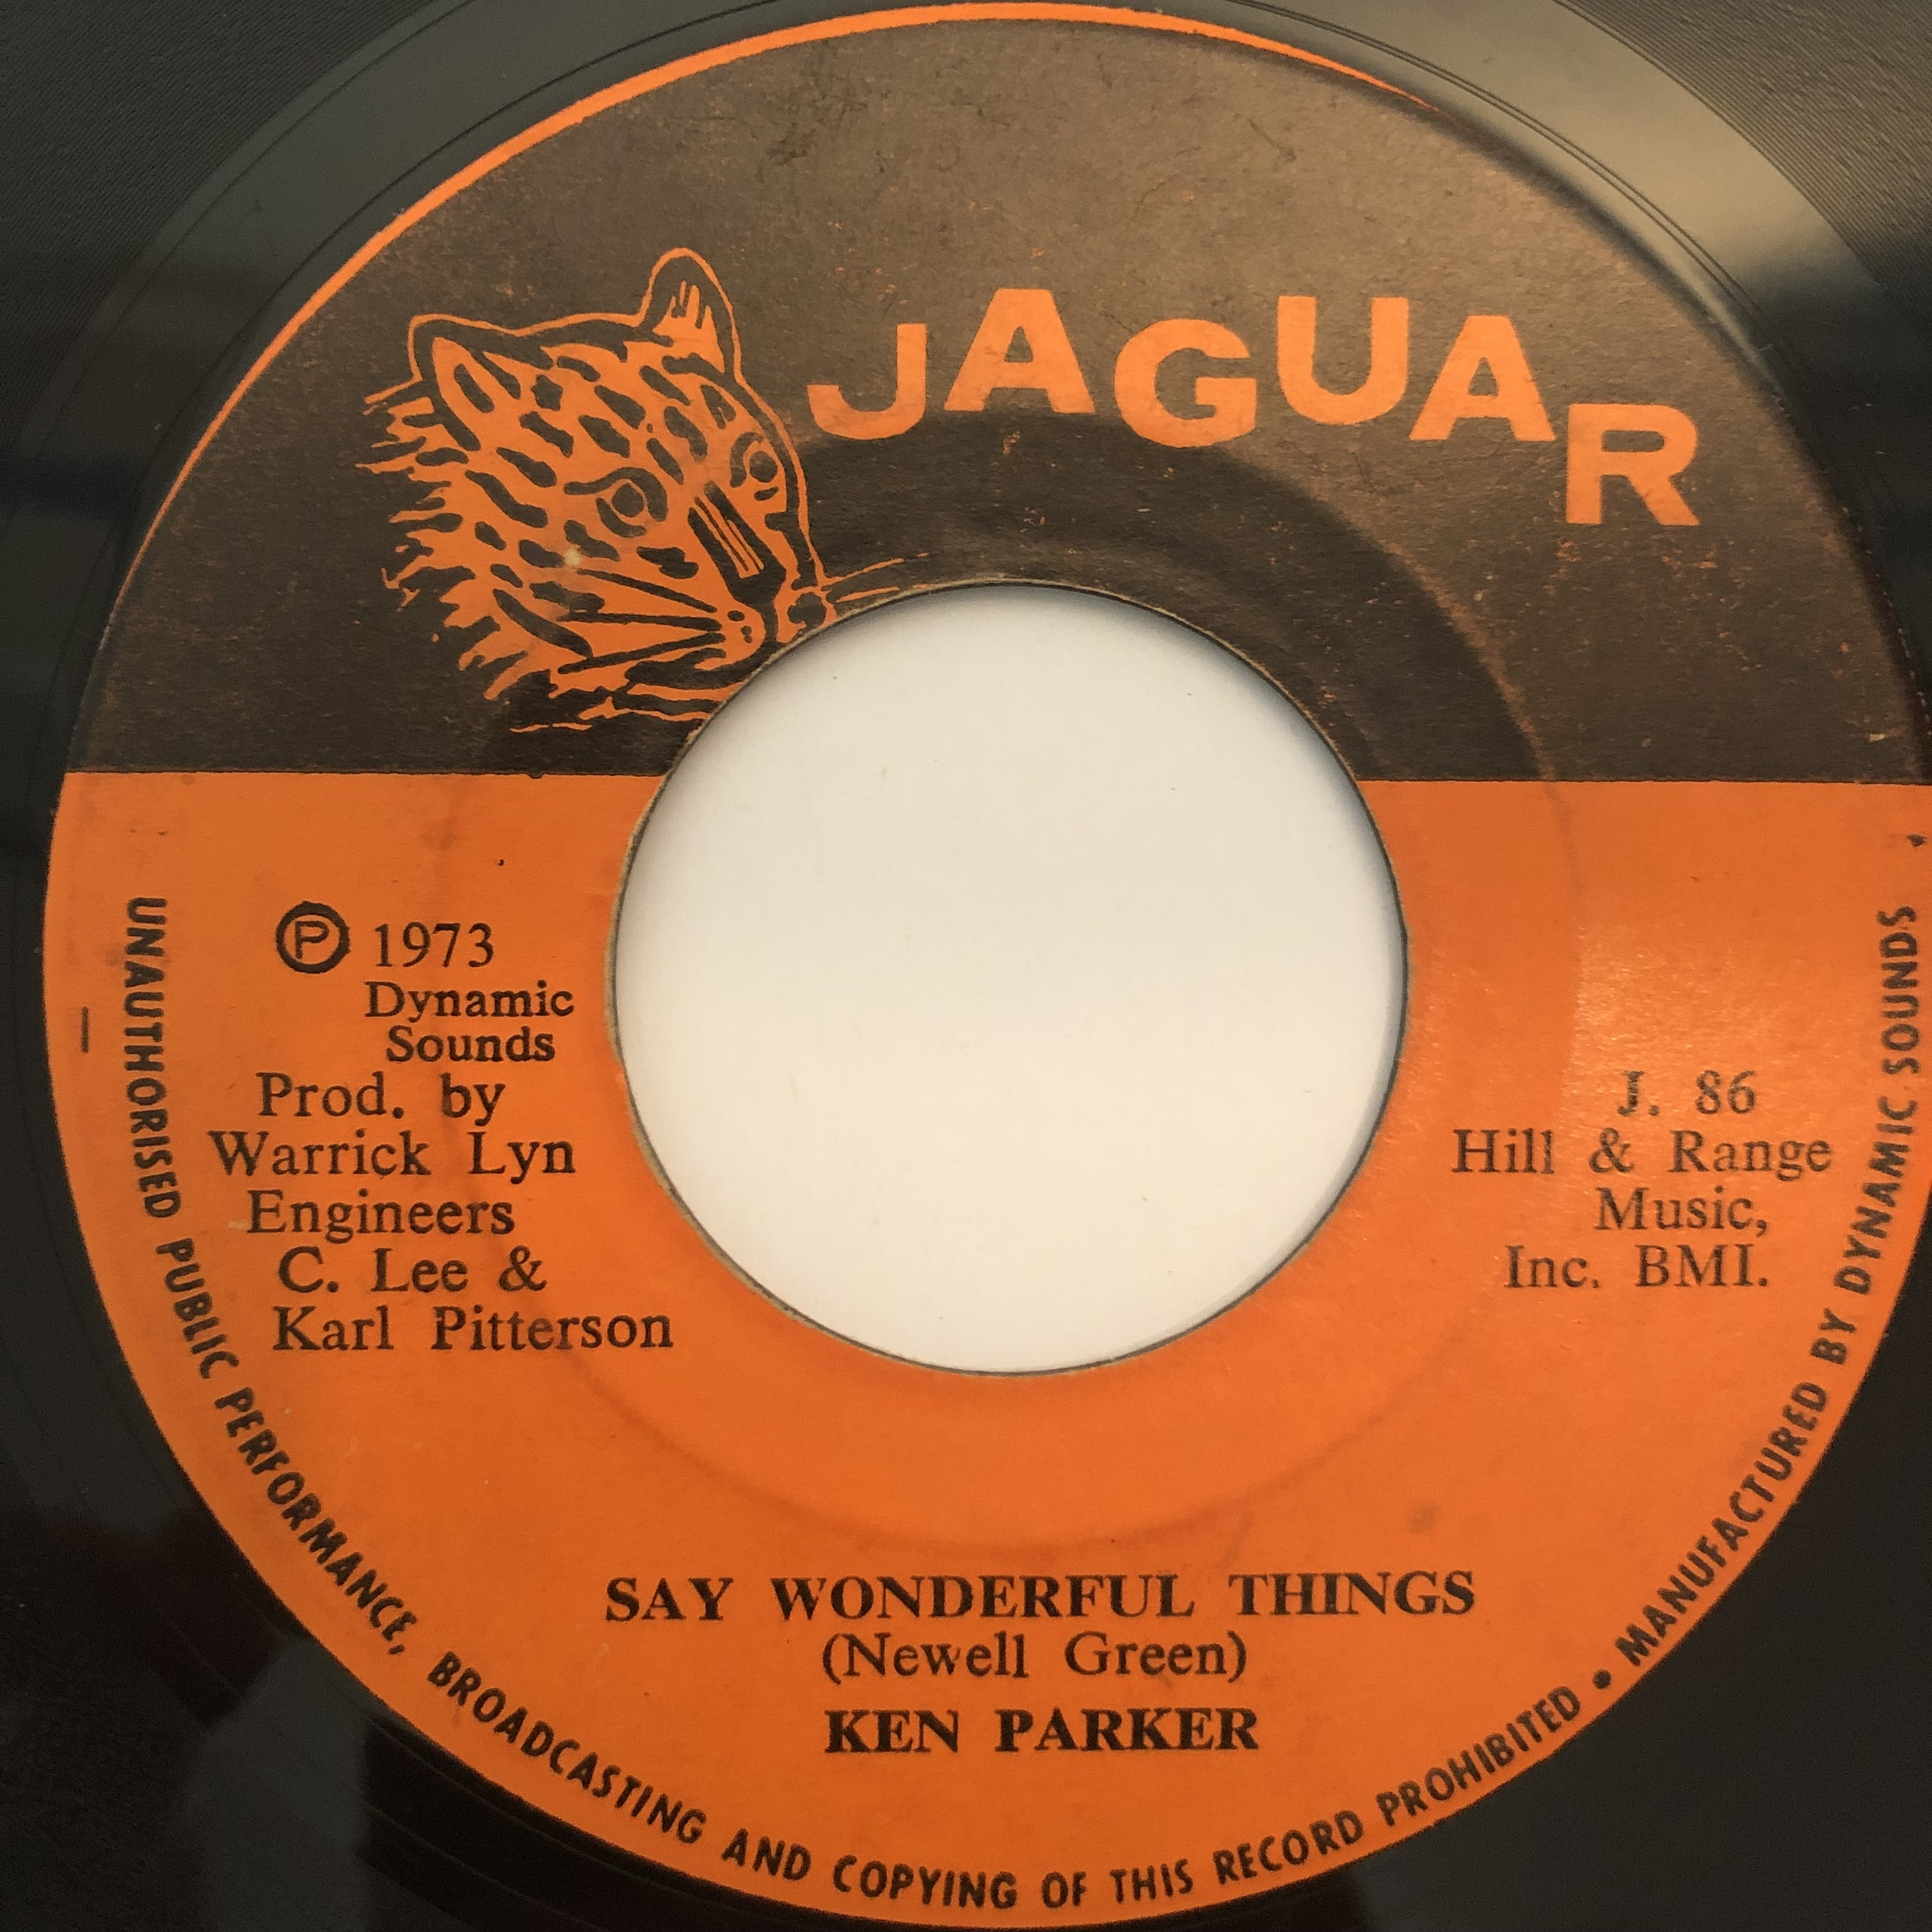 Ken Parker(ケンパーカー) - Say Wonderful Things【7-20249】